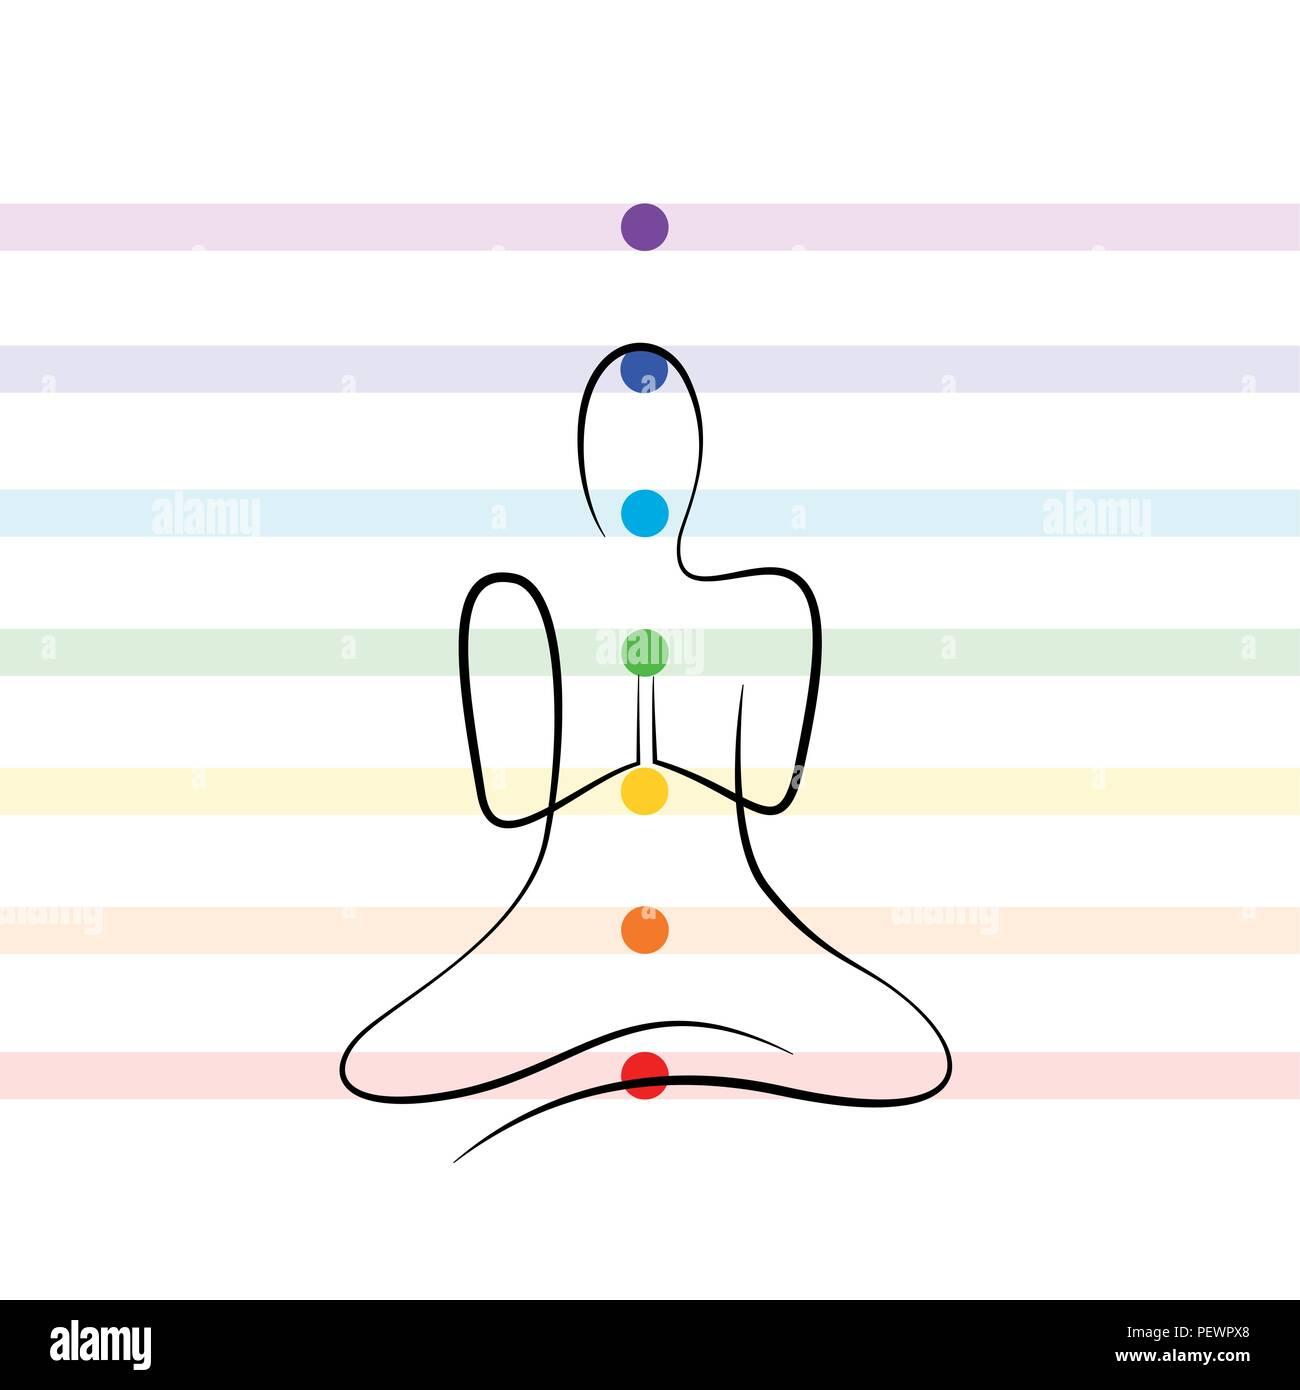 meditation chakra points drawing person vector illustration EPS10 - Stock Image